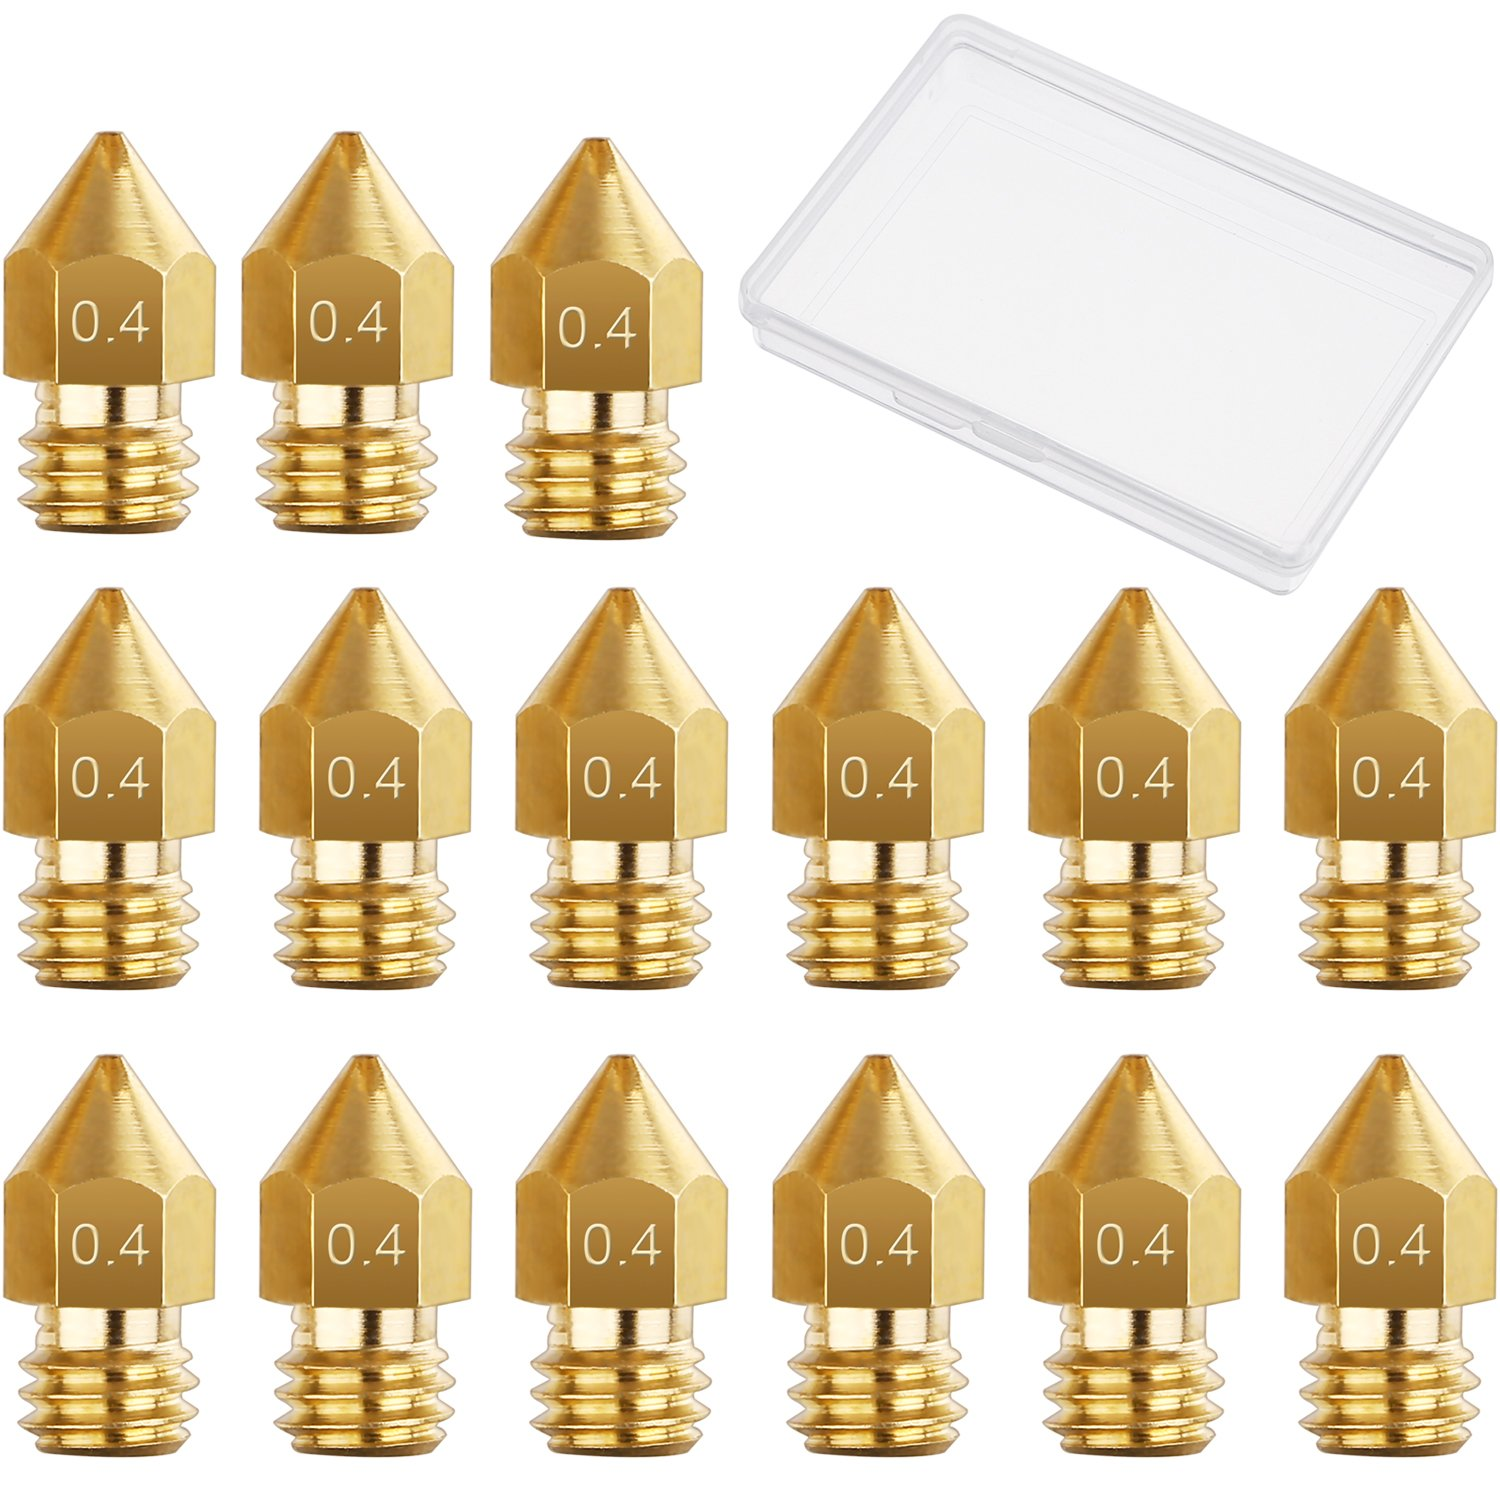 15 Pieces 0.4 mm MK8 3D Printer Brass Extruder Nozzle Print Heads for Makerbot Creality CR-10 with Free Storage Box Hestya